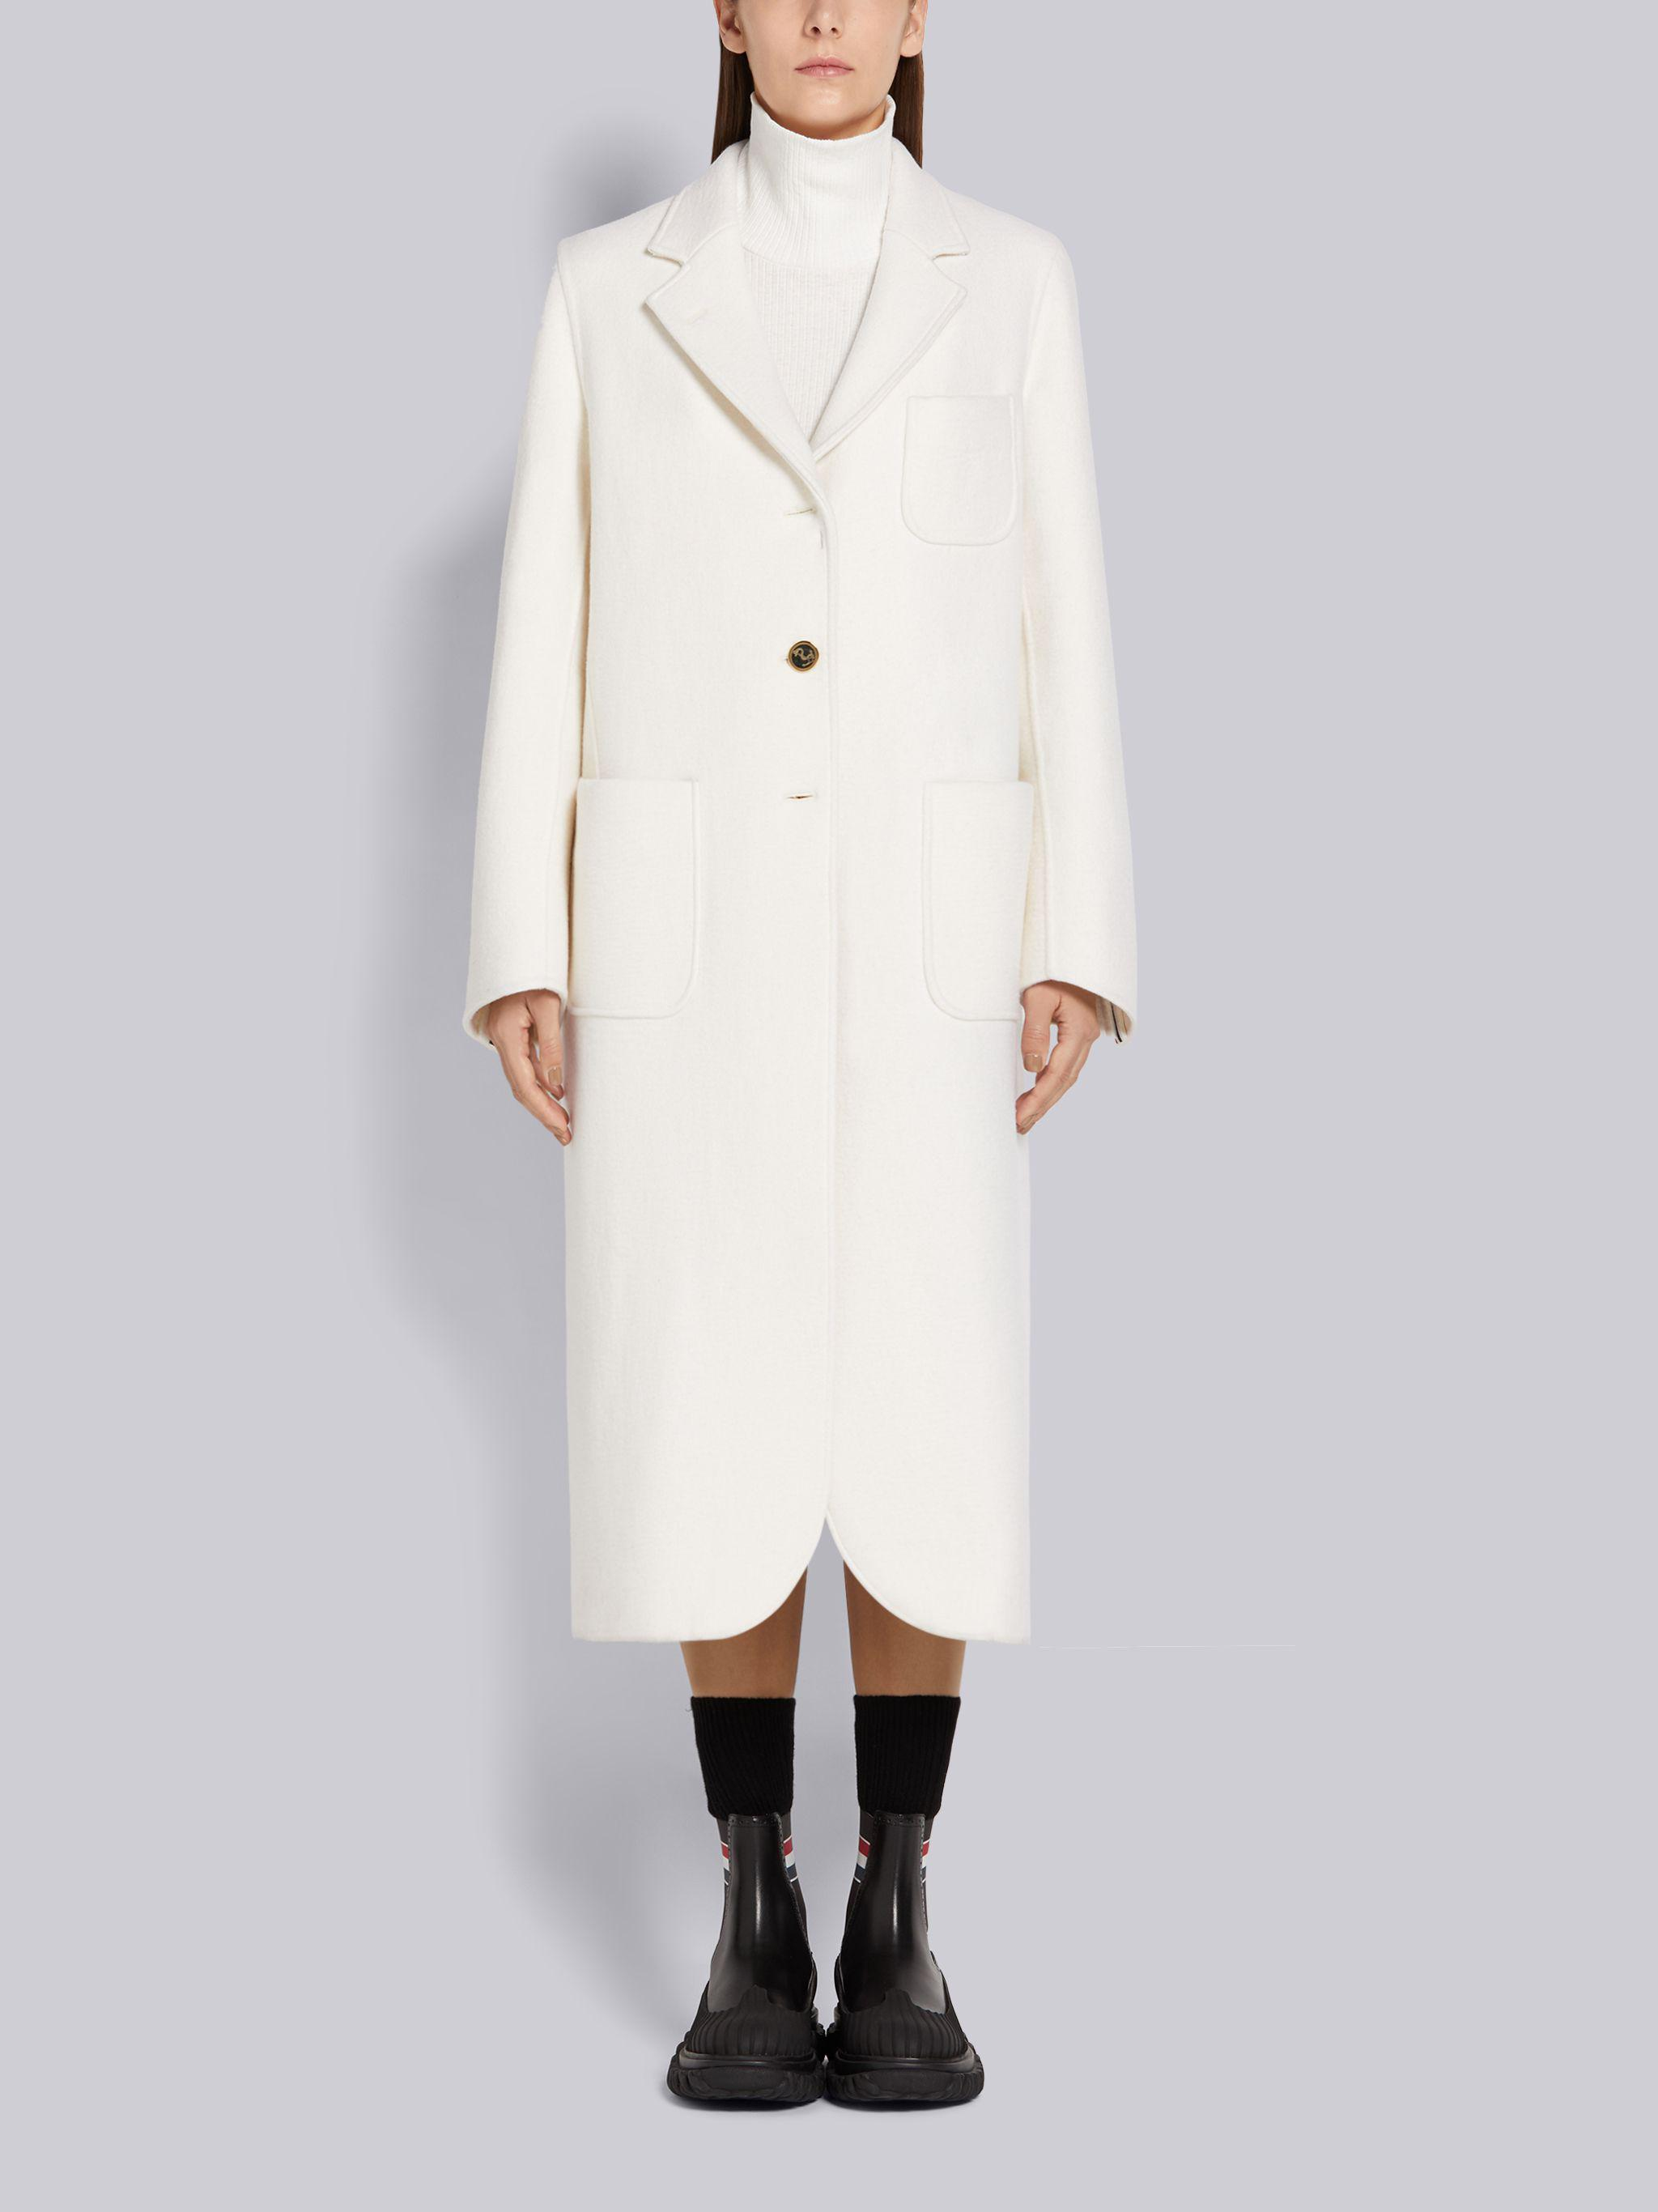 White Felted Wool Cashmere Engineered Stripe Unconstructed Elongated Sack Overcoat